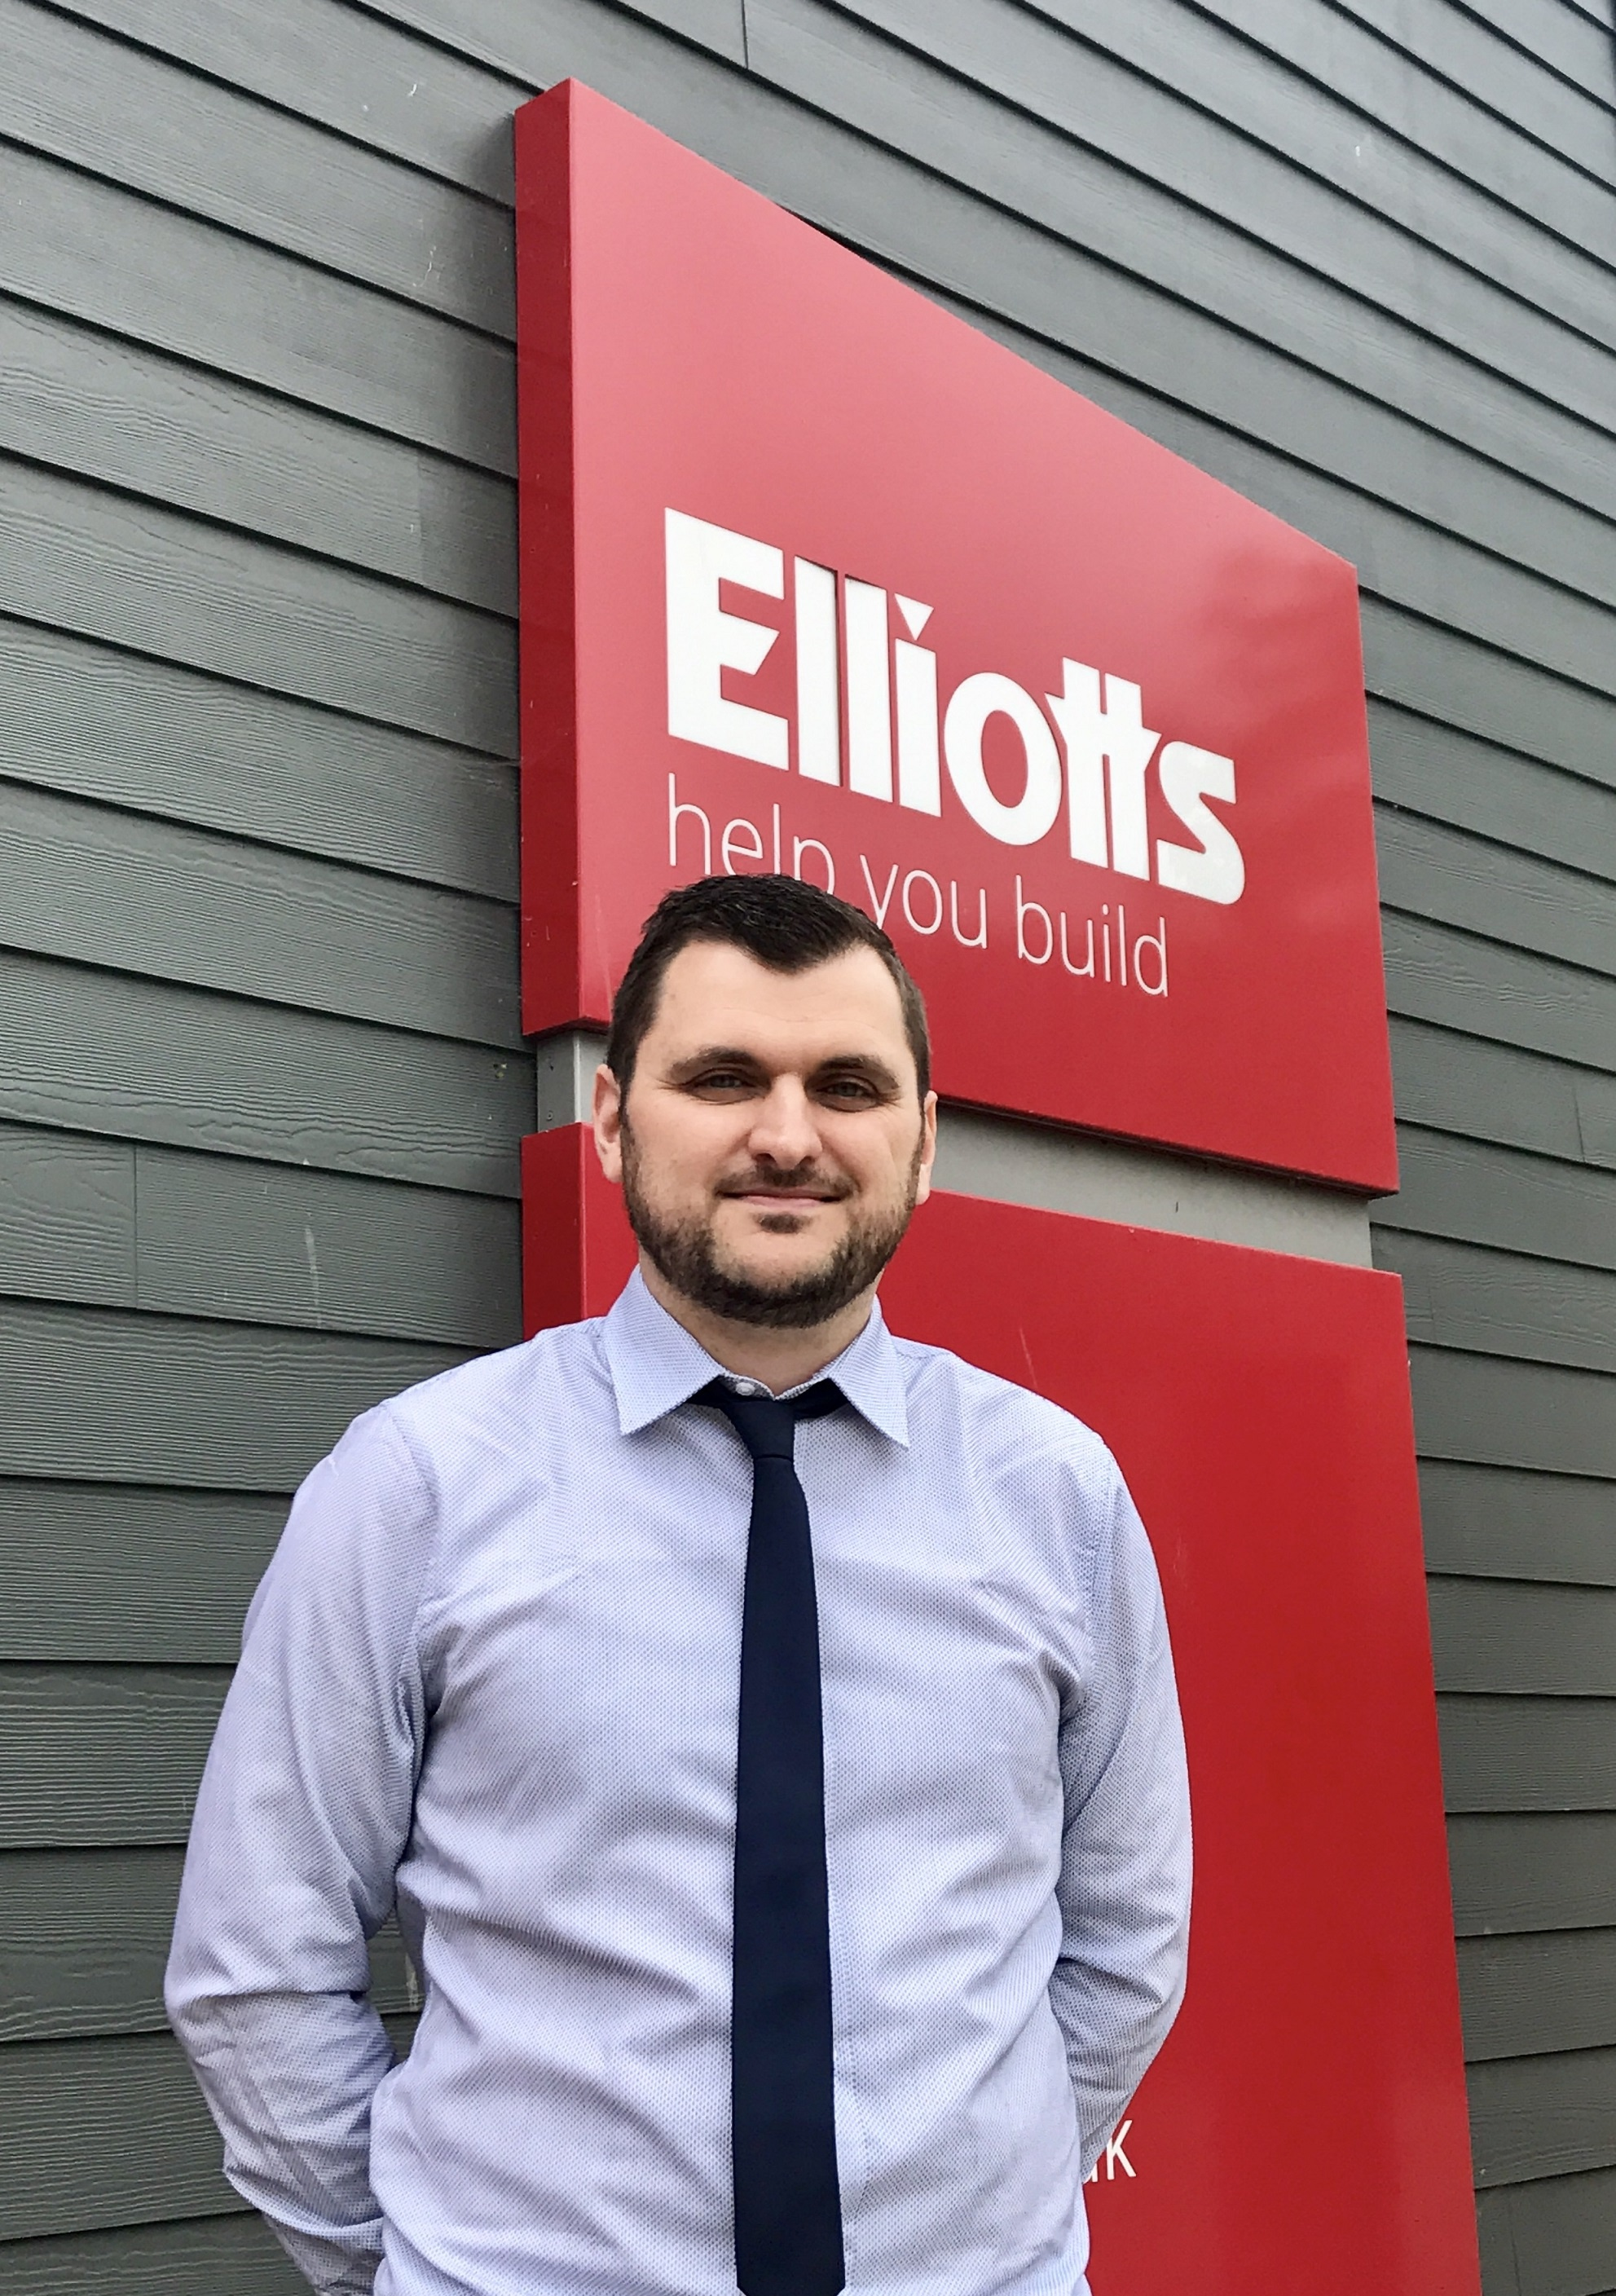 Dominic Rice – Elliotts' new Joinery Product Manager